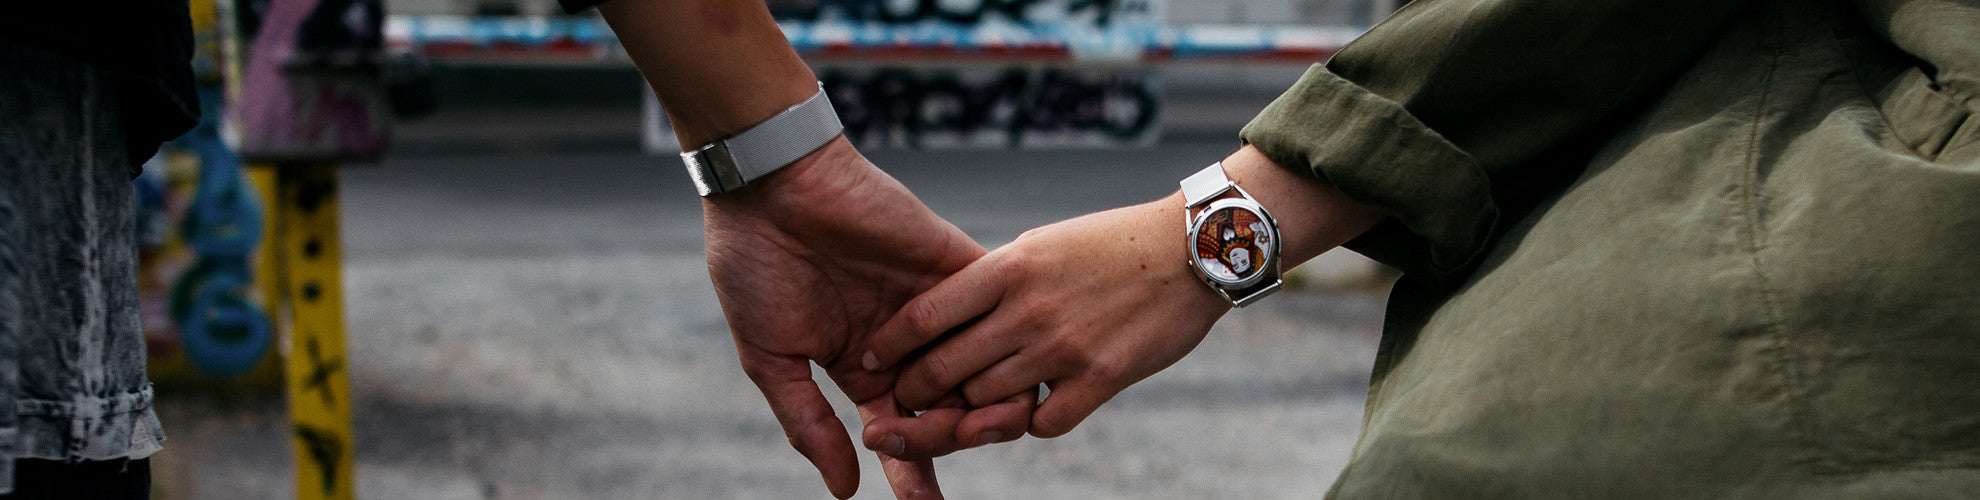 Couples watches | Matching watches | Mr Jones Watches